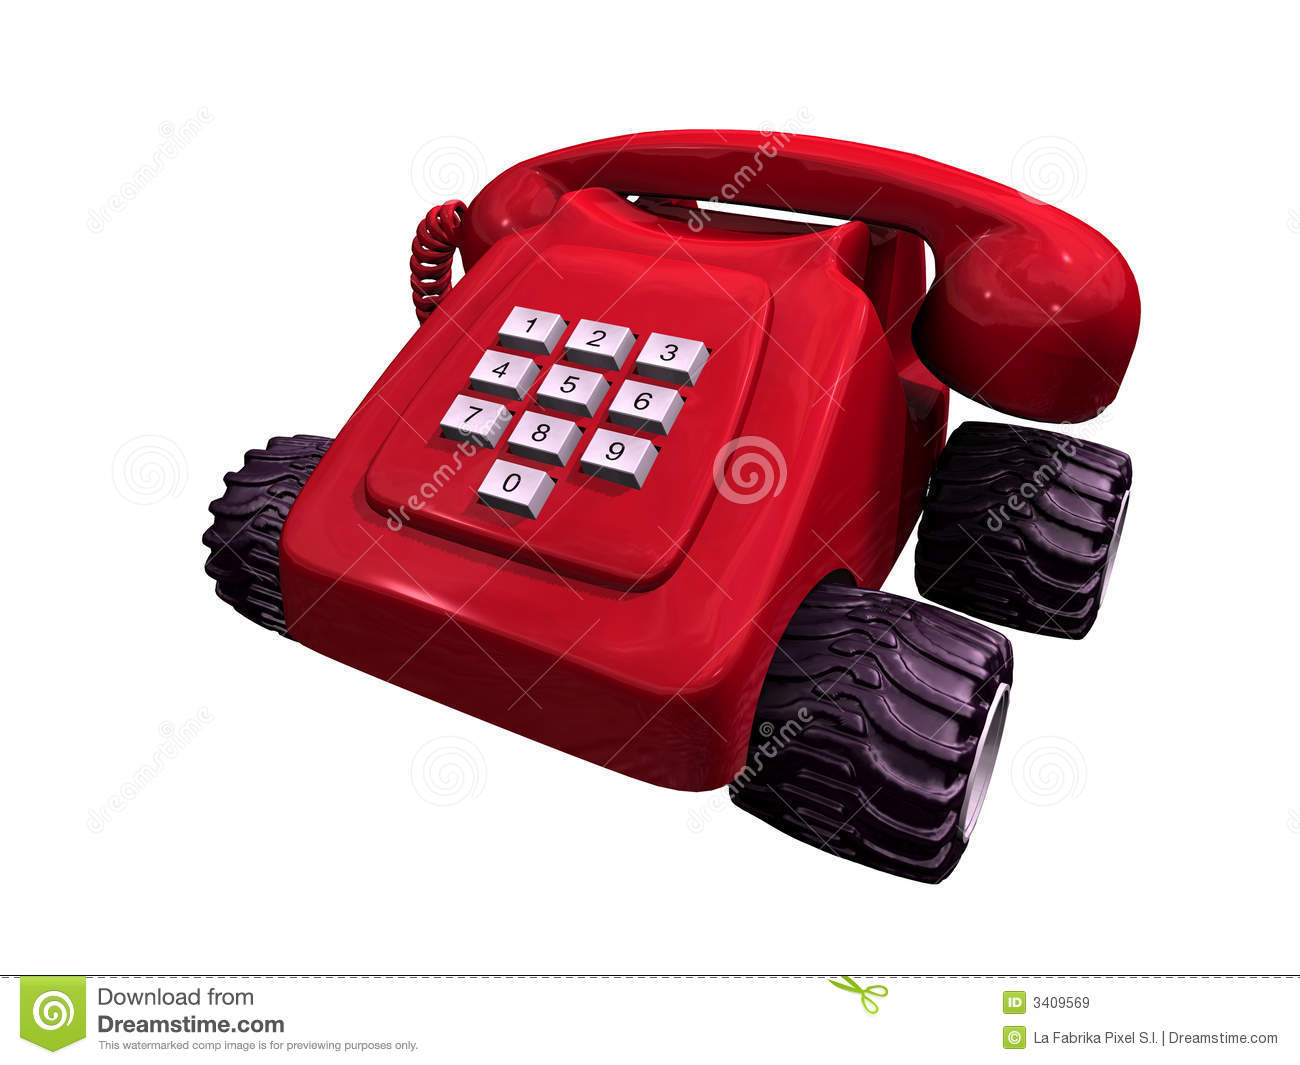 Red Telephone On Wheels Royalty Free Stock Images - Image: 3409569